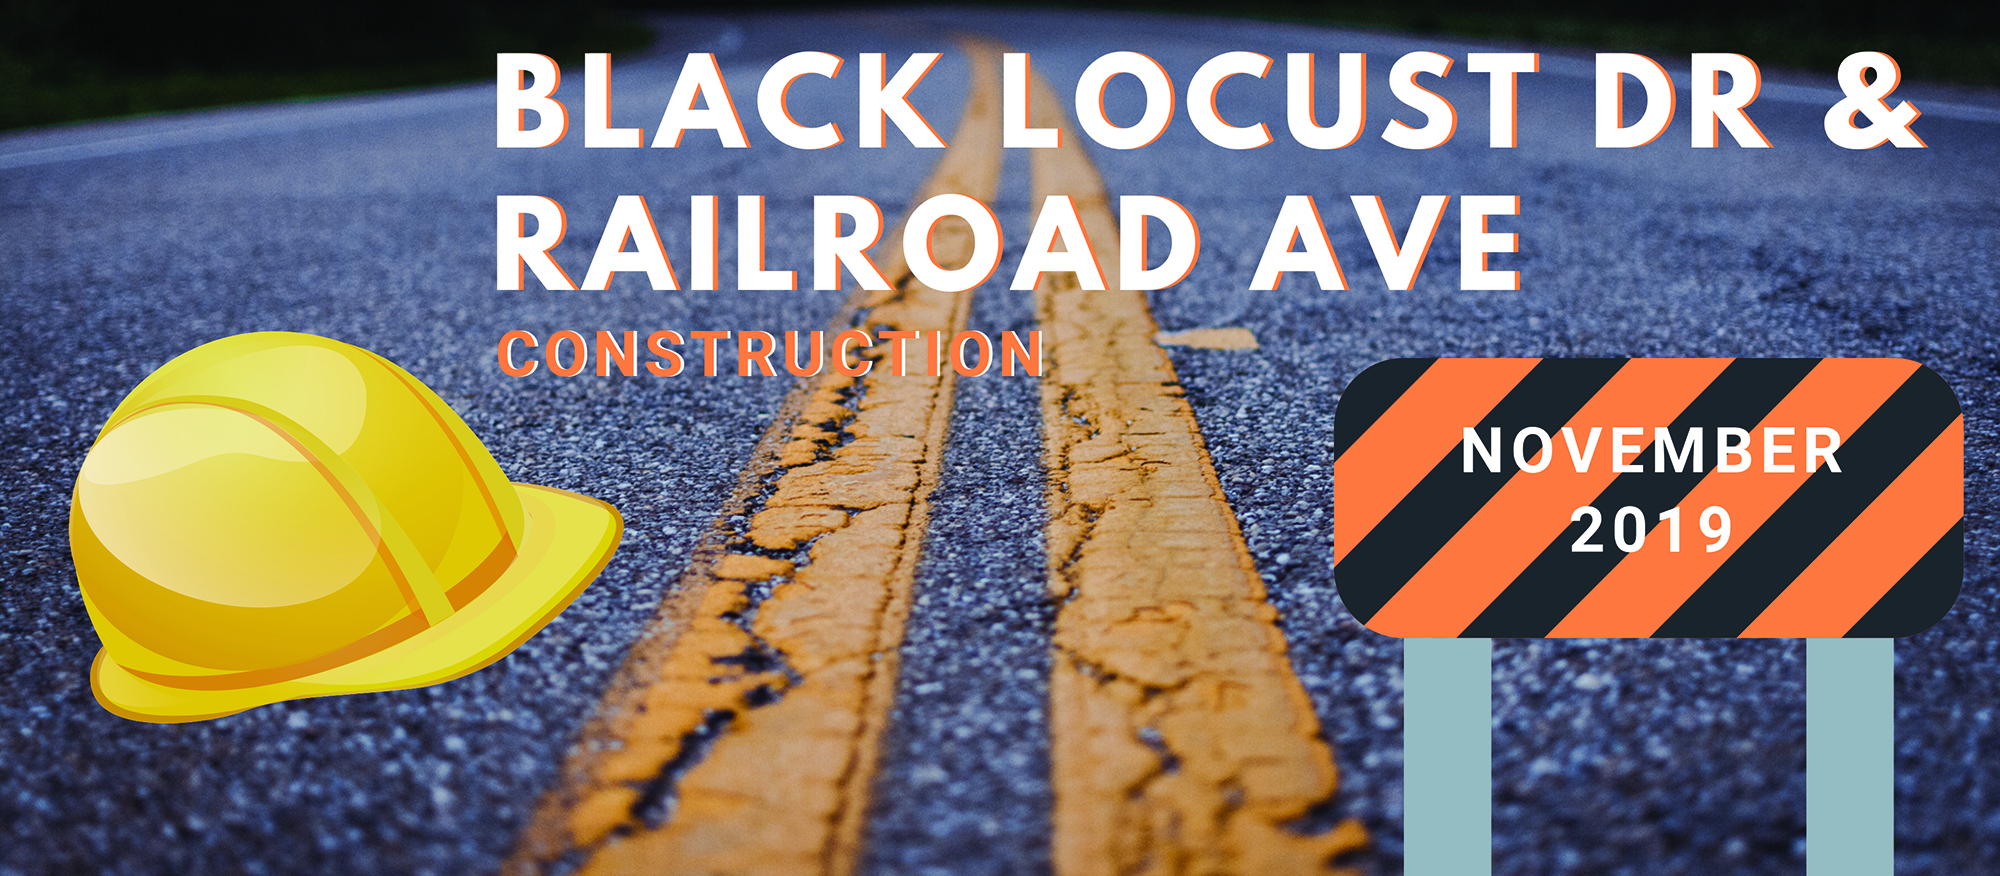 Black Locust Dr. & Railroad Ave. Construction November 2019